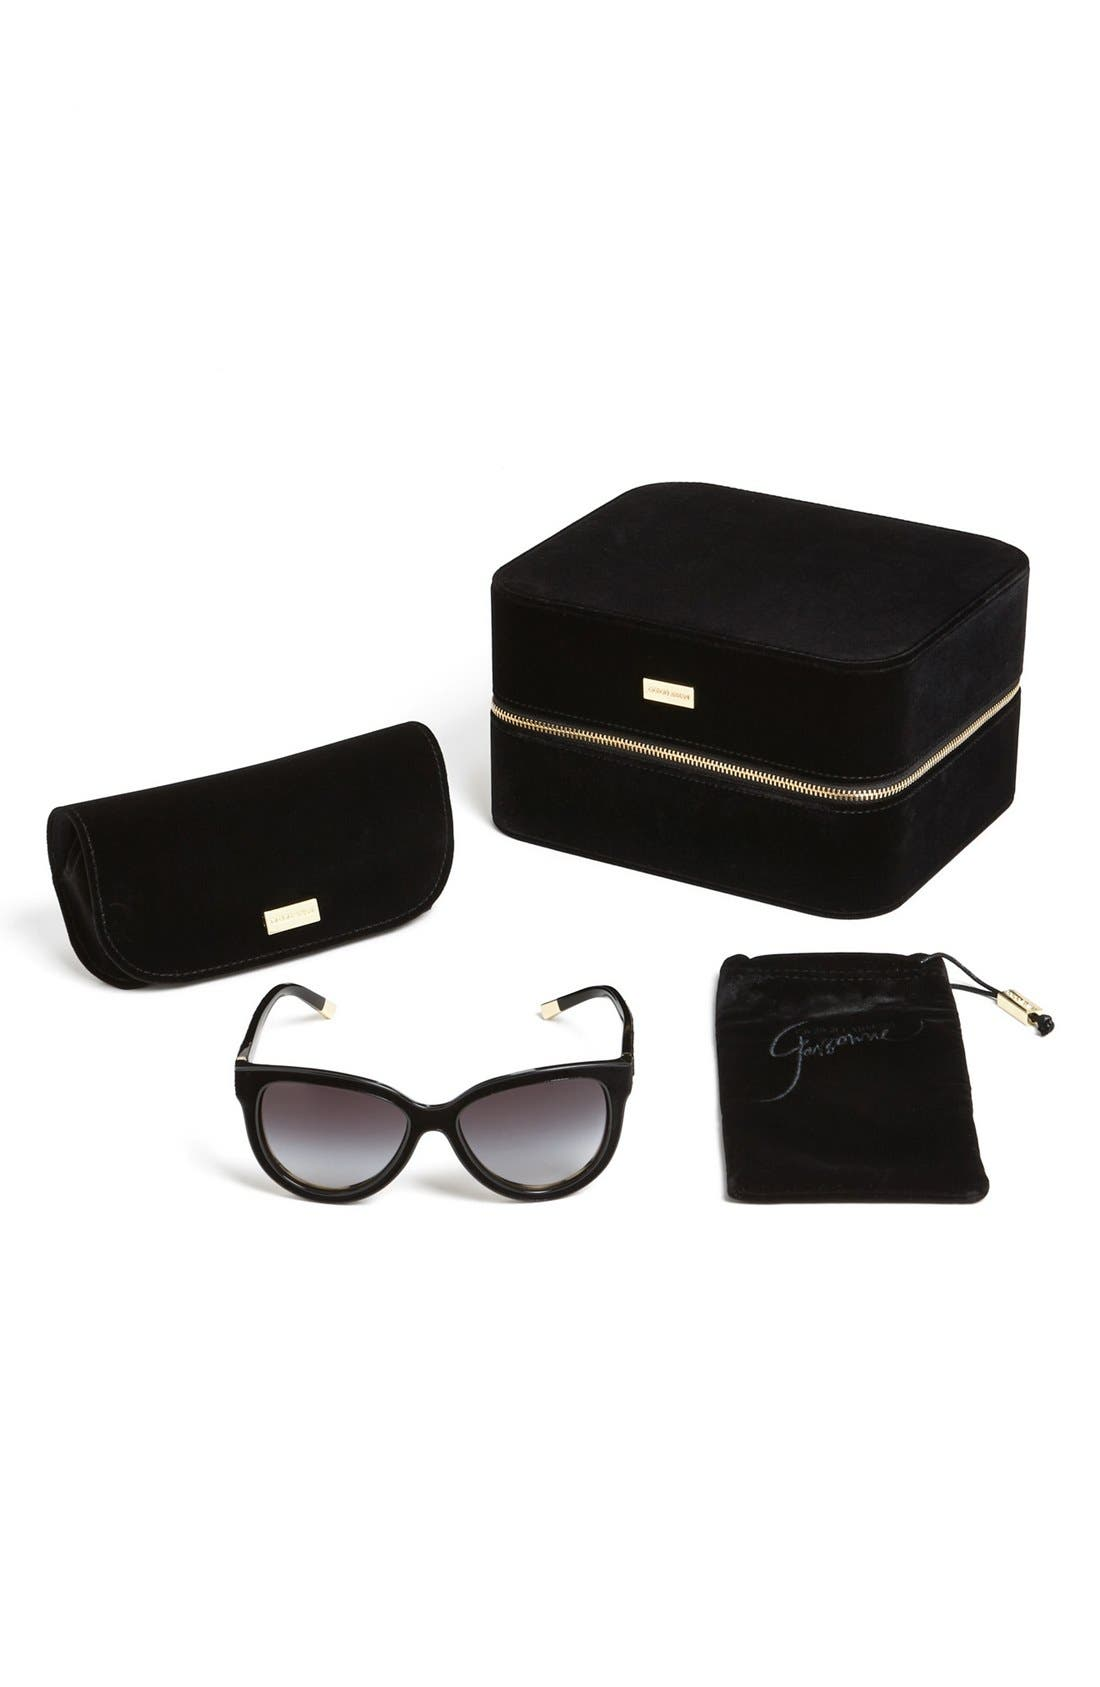 Alternate Image 2  - Giorgio Armani 'Garçonne' 57mm Cat Eye Sunglasses